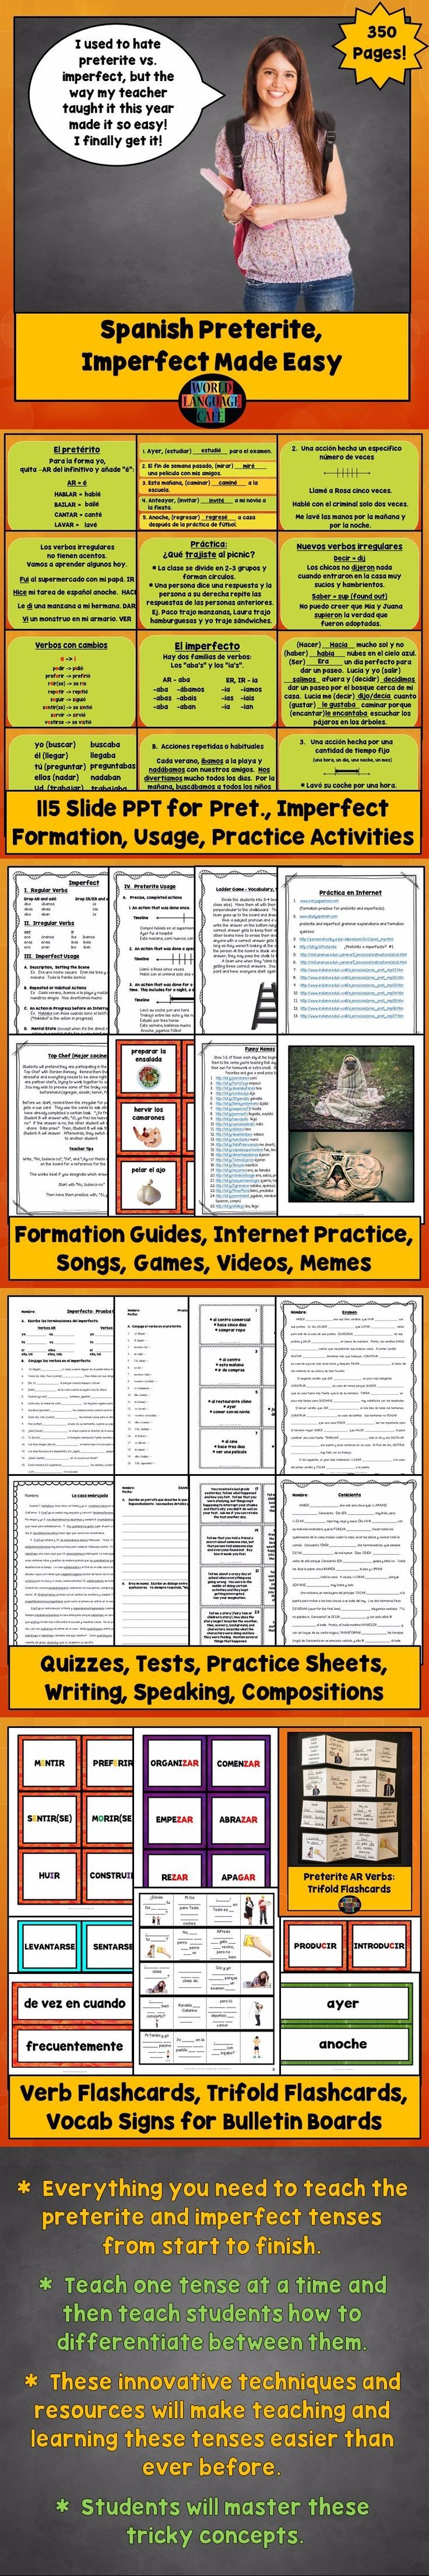 All Preterite Trivia Quizzes and Games - Sporcle